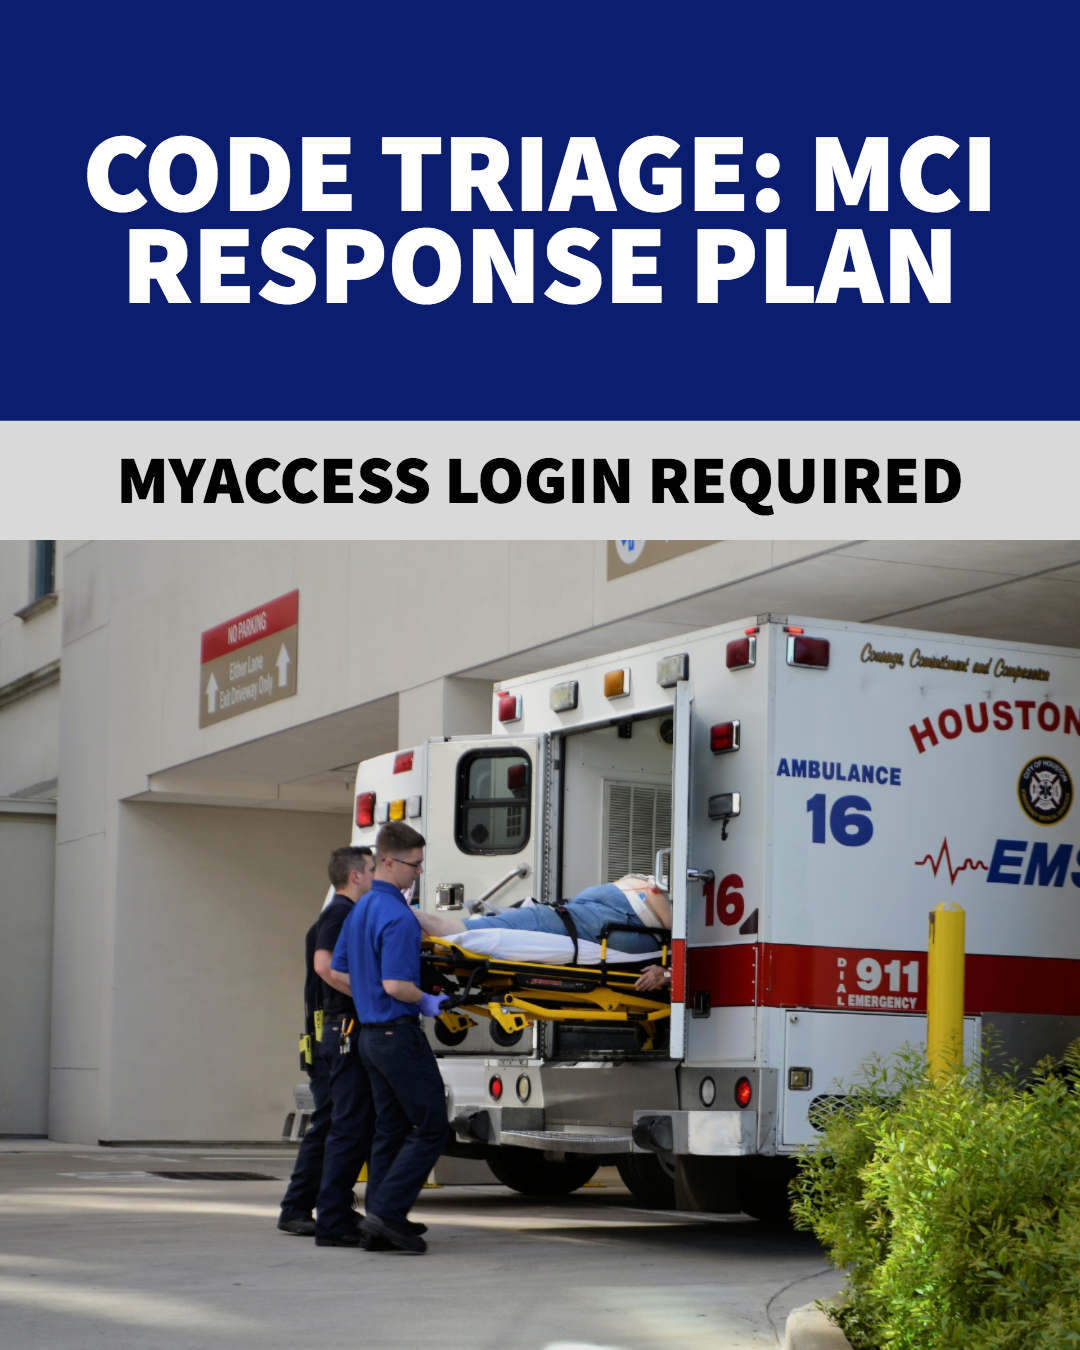 Code Triage Response Plan